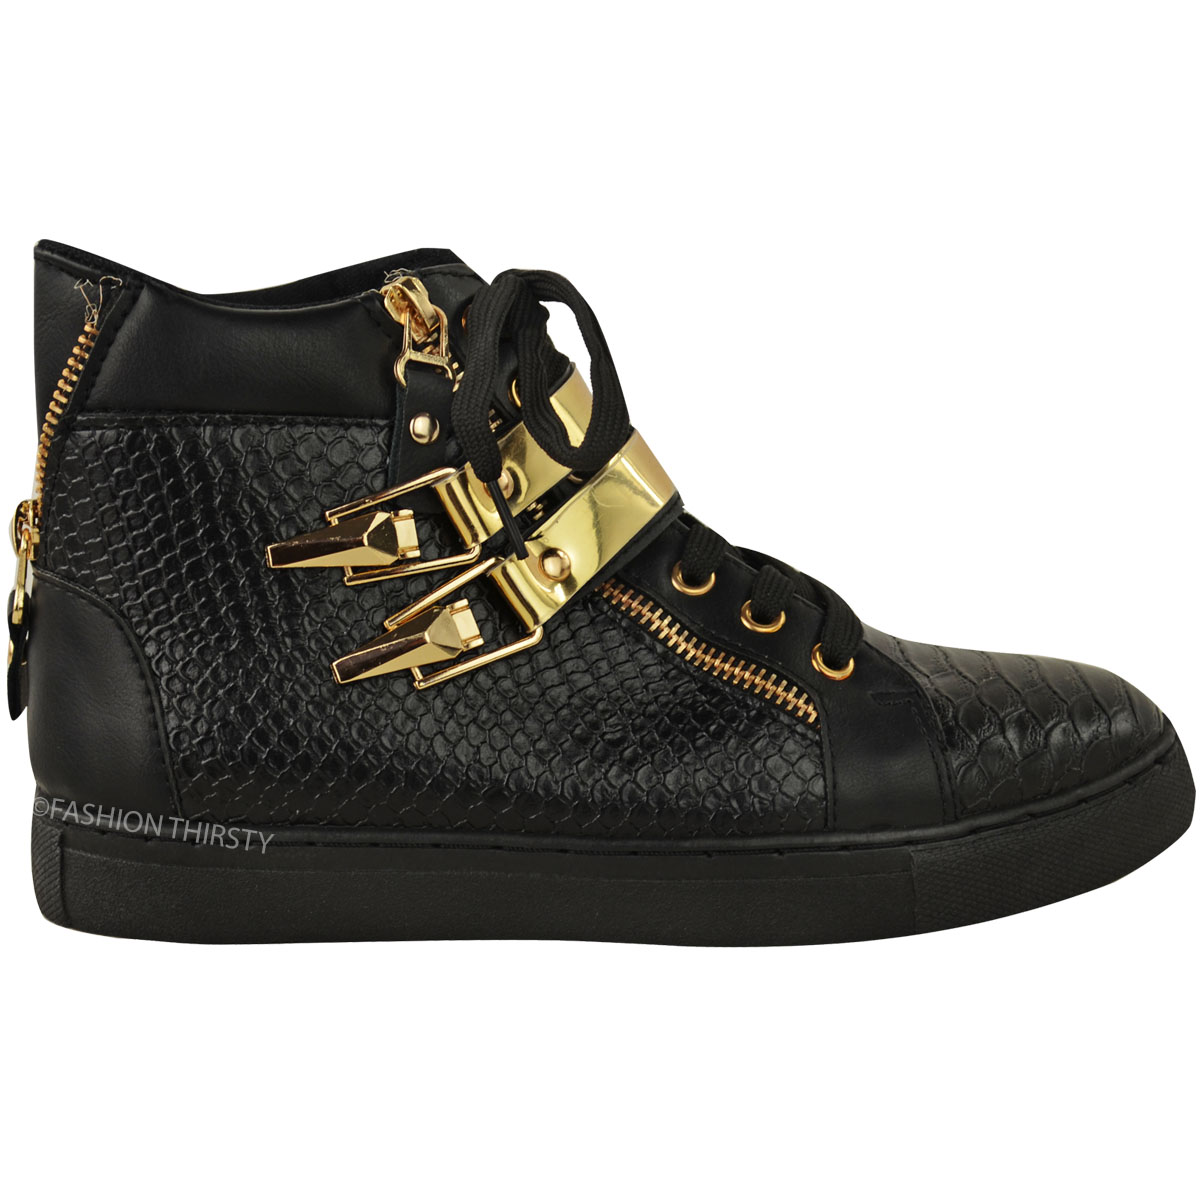 Free shipping on women's high-top sneakers at senonsdownload-gv.cf Shop from the best brands. Totally free shipping and returns.